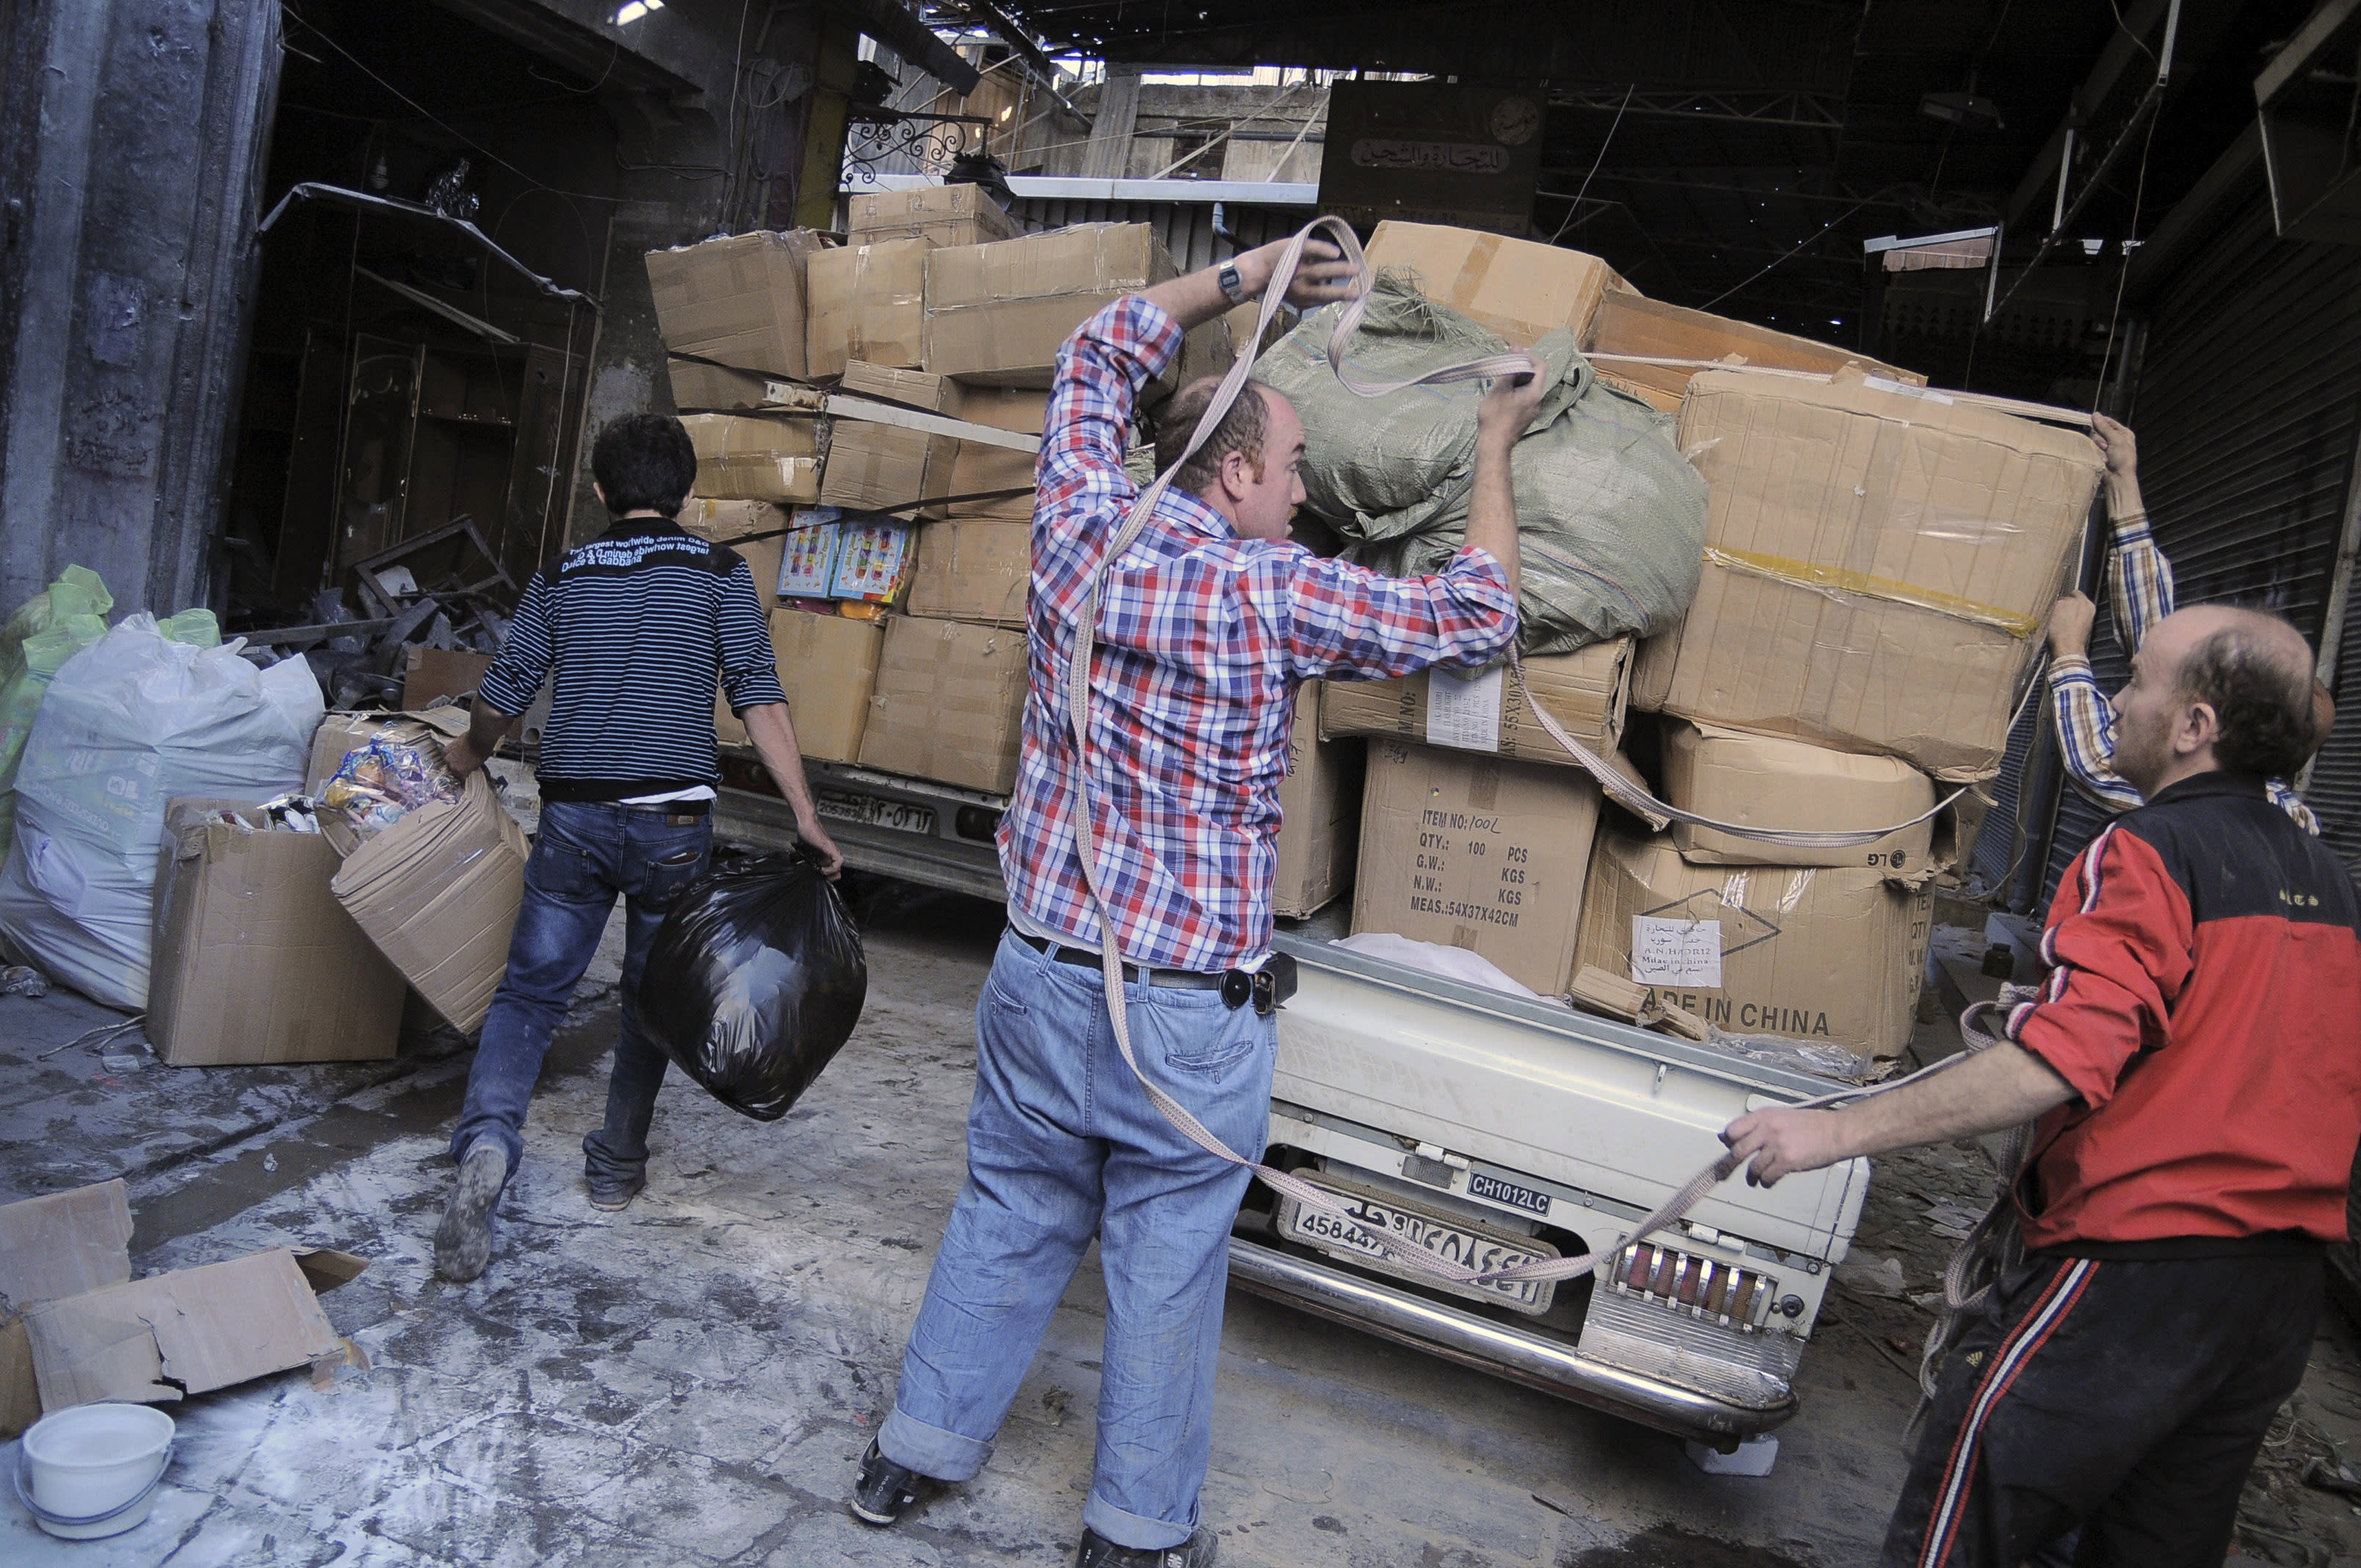 FILE - In this Nov. 6, 2012 file photo, merchants remove their wares from the souk in the Old City of Aleppo, Syria. A year after the opposition fighters stormed Aleppo, taking control of several districts in the city of three million and capturing much of its surrounding towns and villages, the industrial zones that constituted 60 percent of Syrian pre-war economy, are mostly deserted. Some have been looted and several have been burnt down. (AP Photo/Monica Prieto, File)